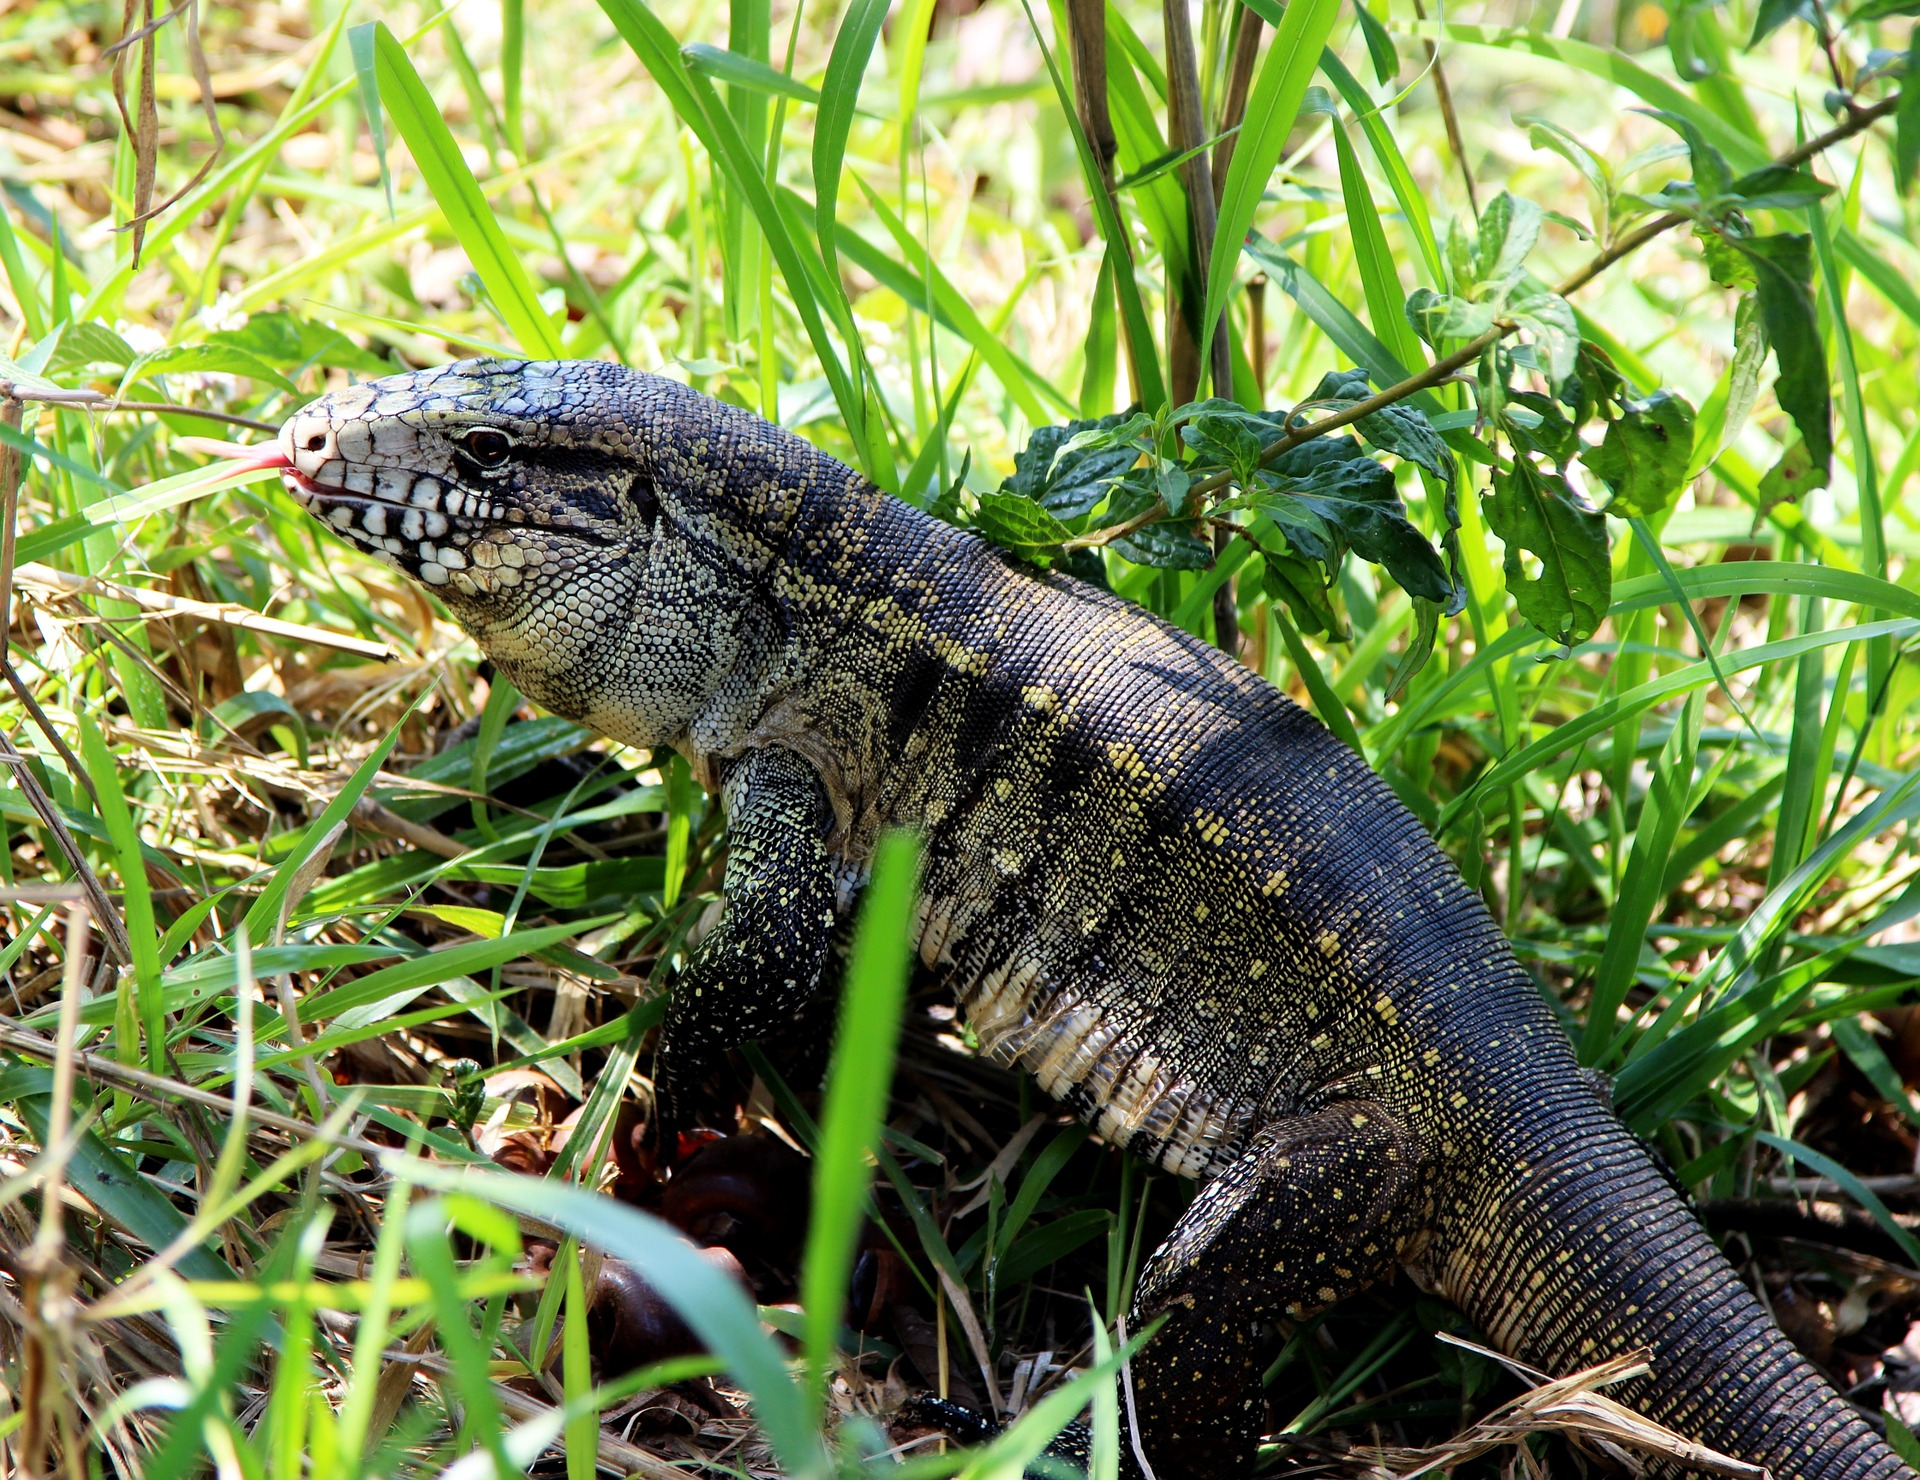 Large Invasive Lizards The Size Of Dogs Are Taking Over The Southeastern United States